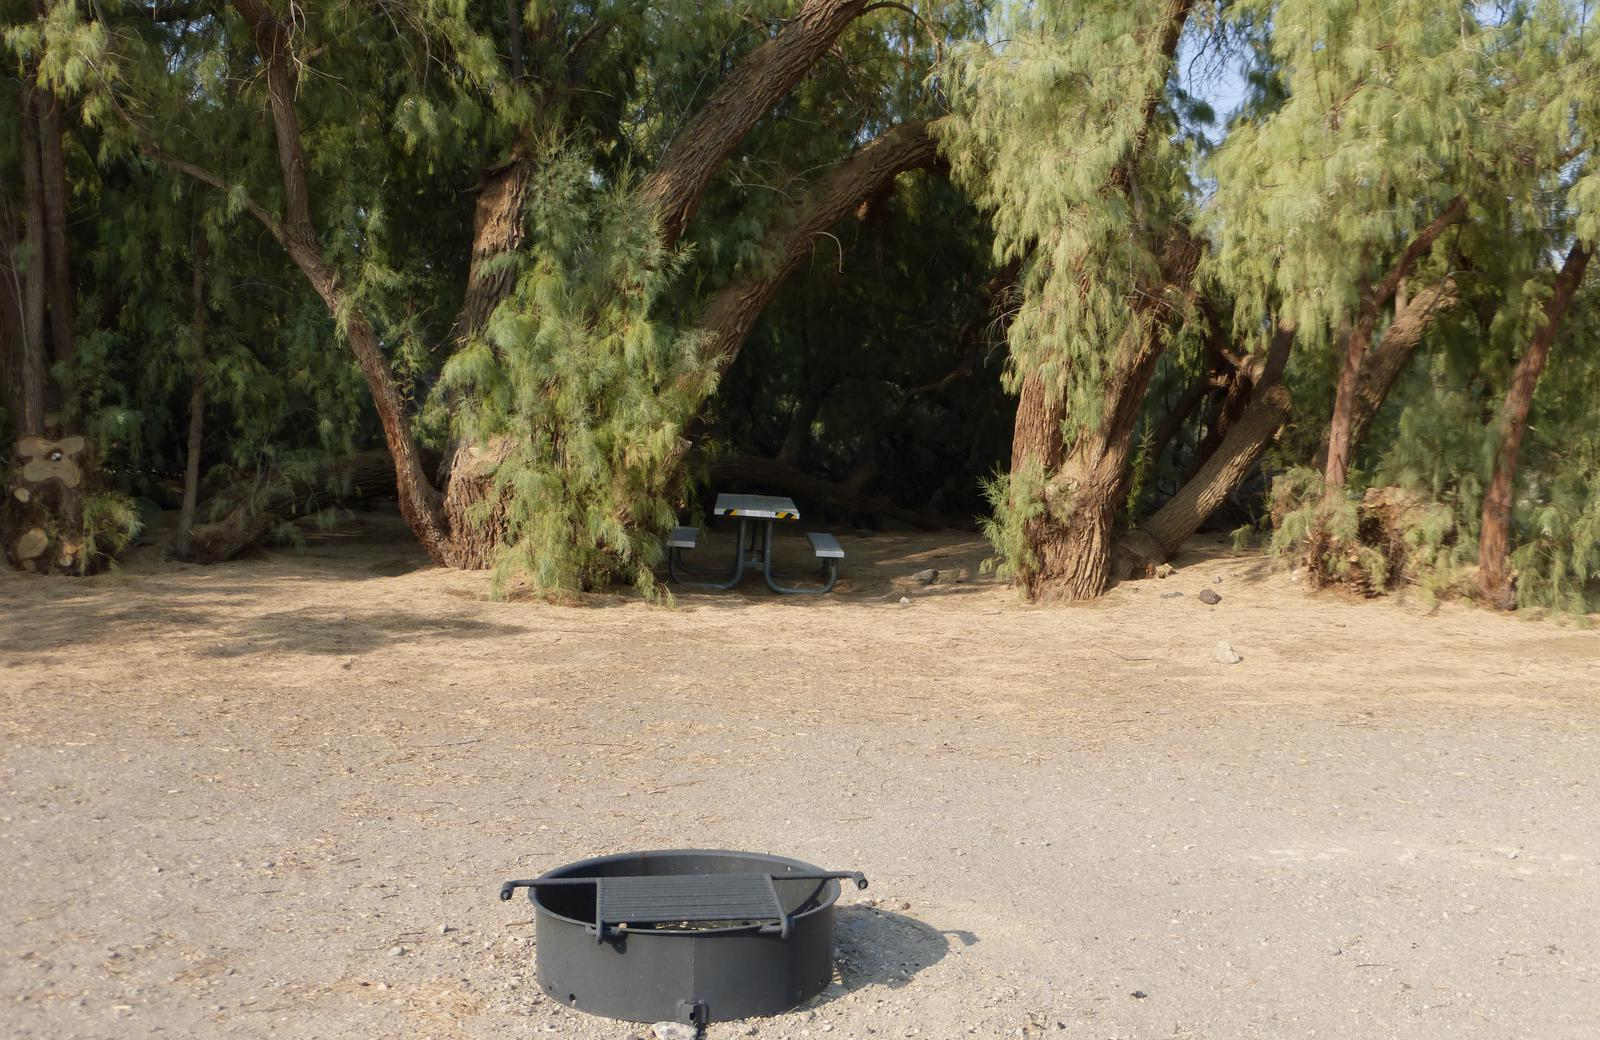 Furnace Creek Campground standard nonelectric tent only drive in site #108 with picnic table and fire ring.